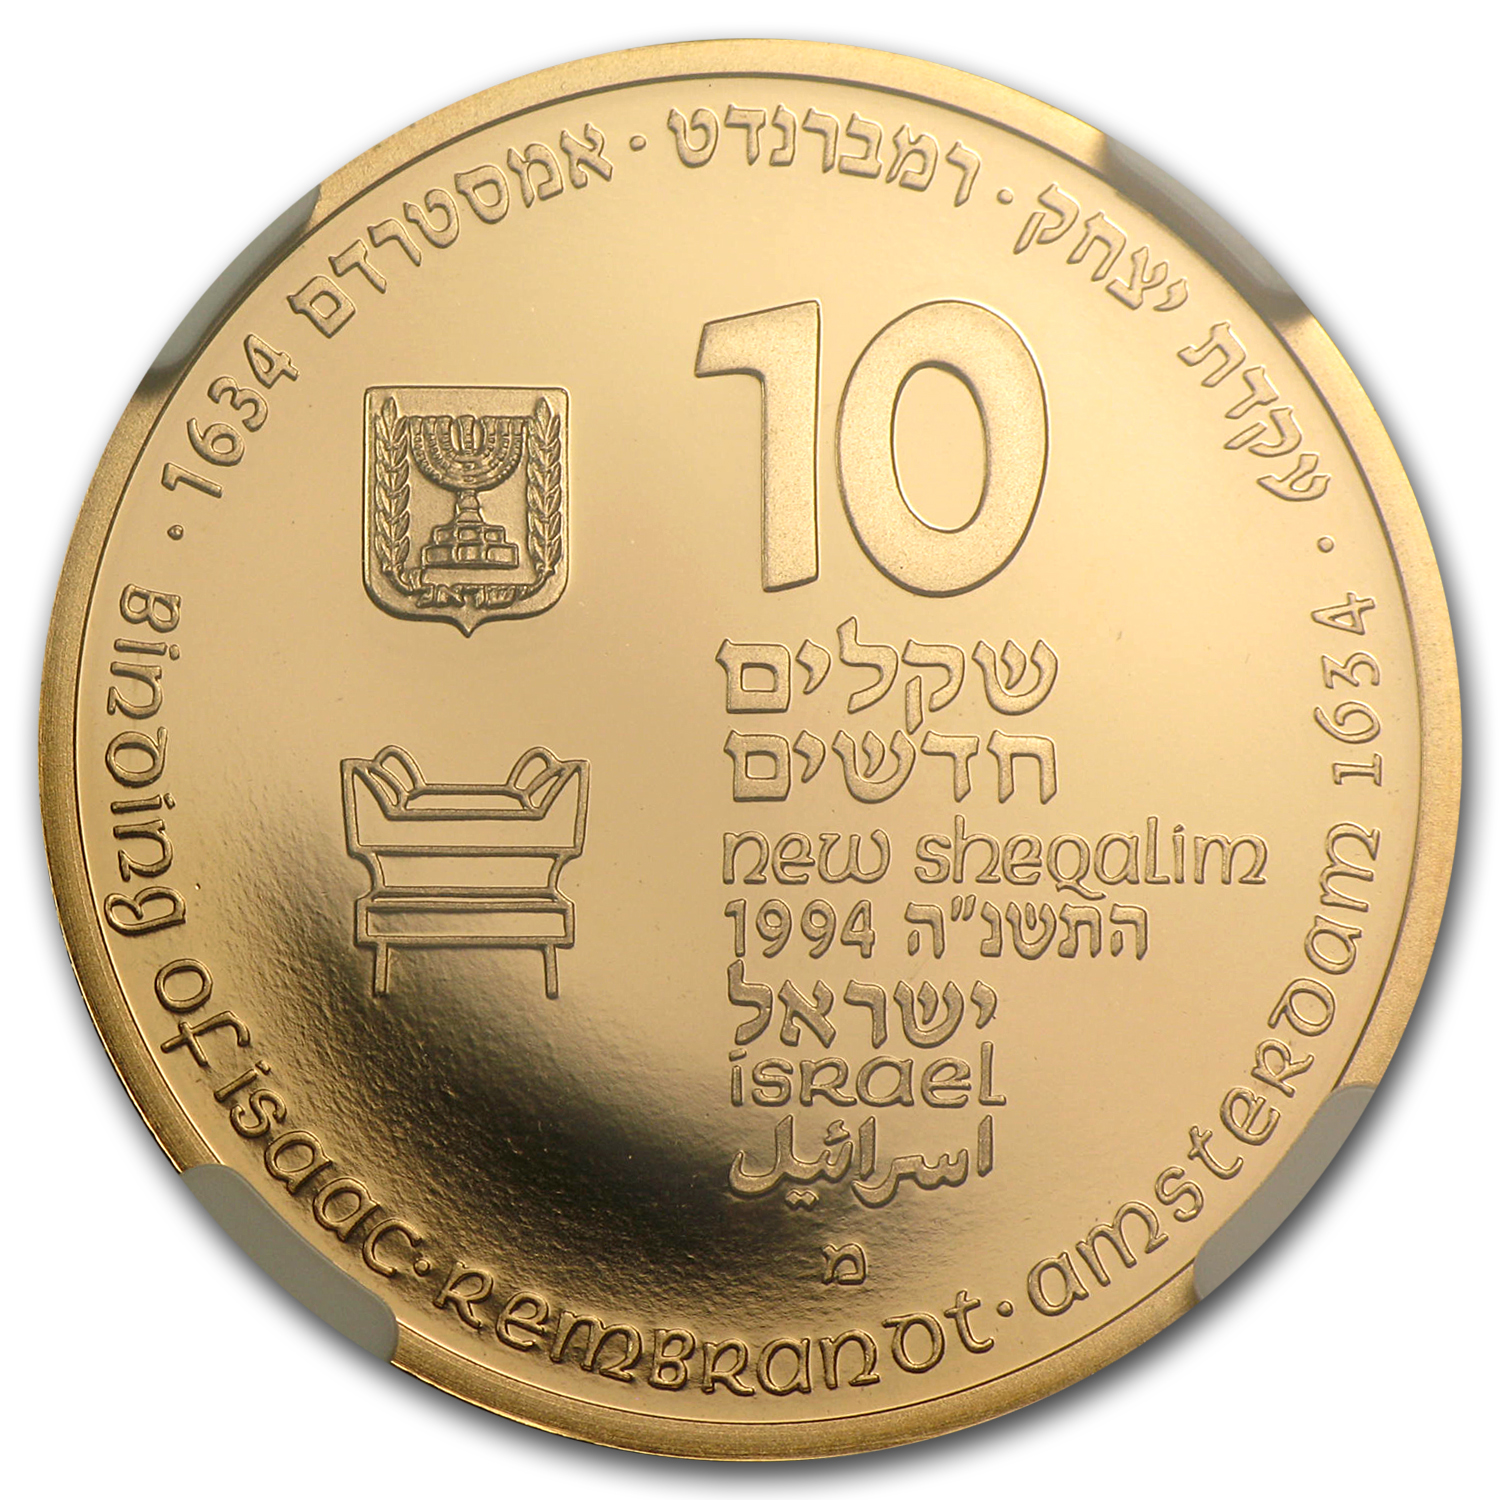 1994 Israel Binding of Isaac 1/2 oz Proof Gold PF-70 UCAM NGC